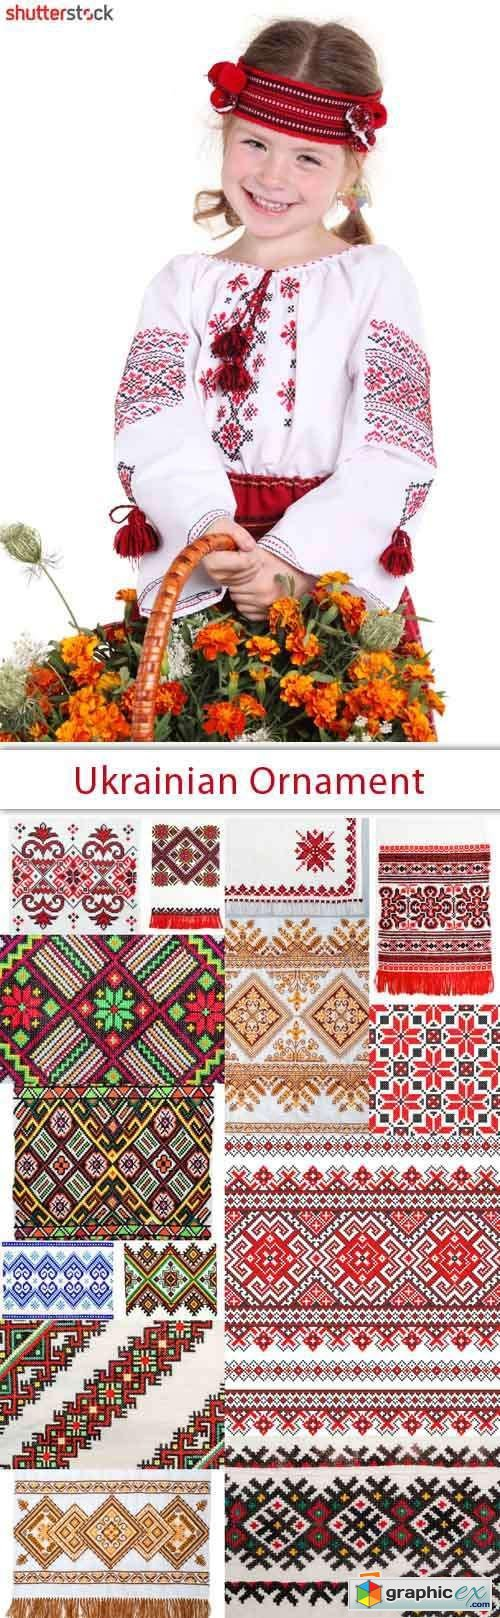 Ukrainian Ornaments 25xJPG